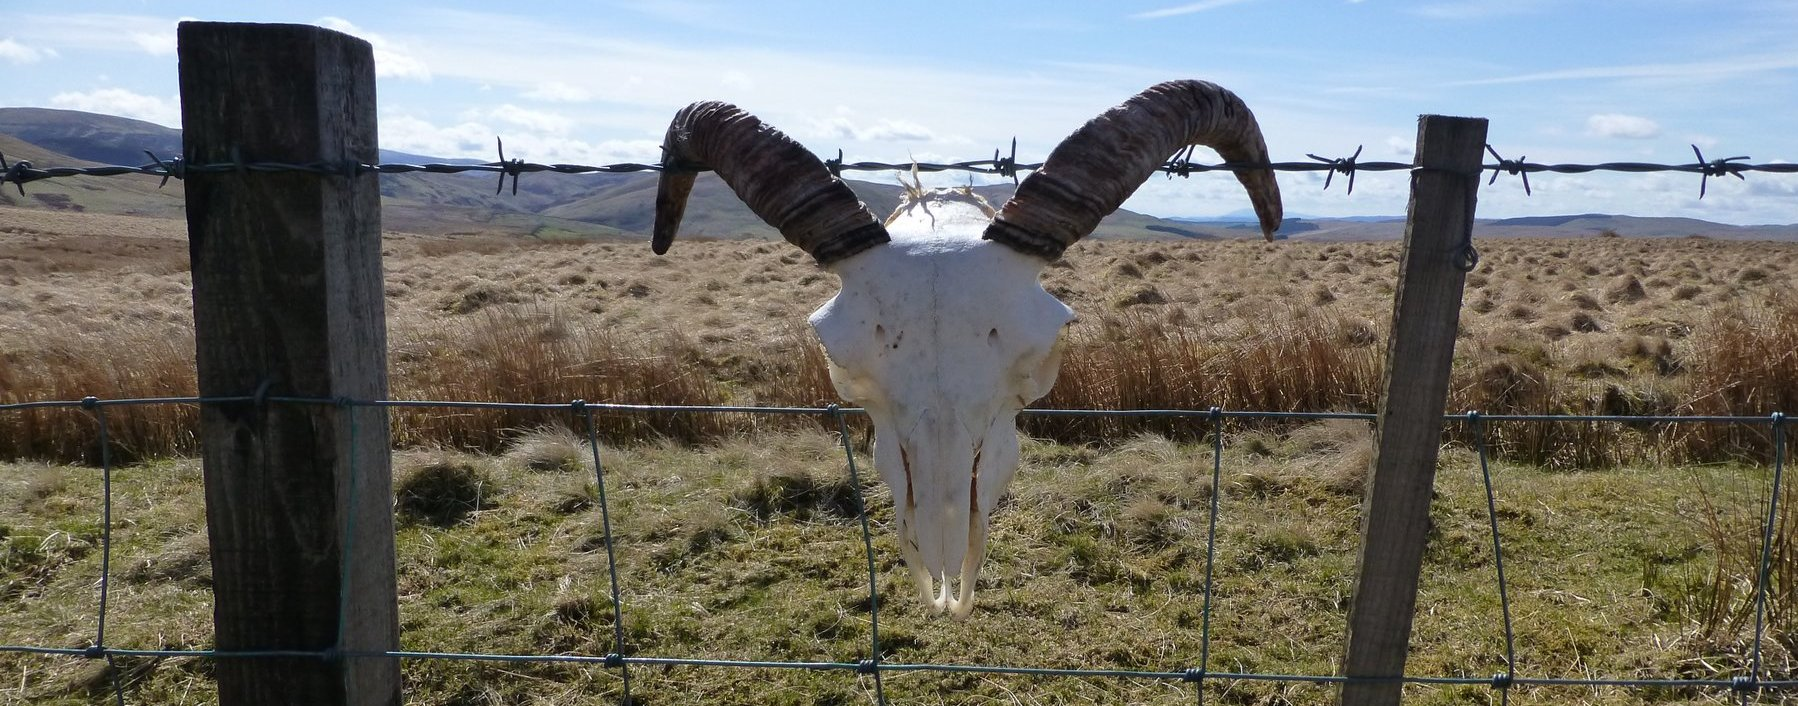 Interesting fence ornament on the way up Coupland Knowe